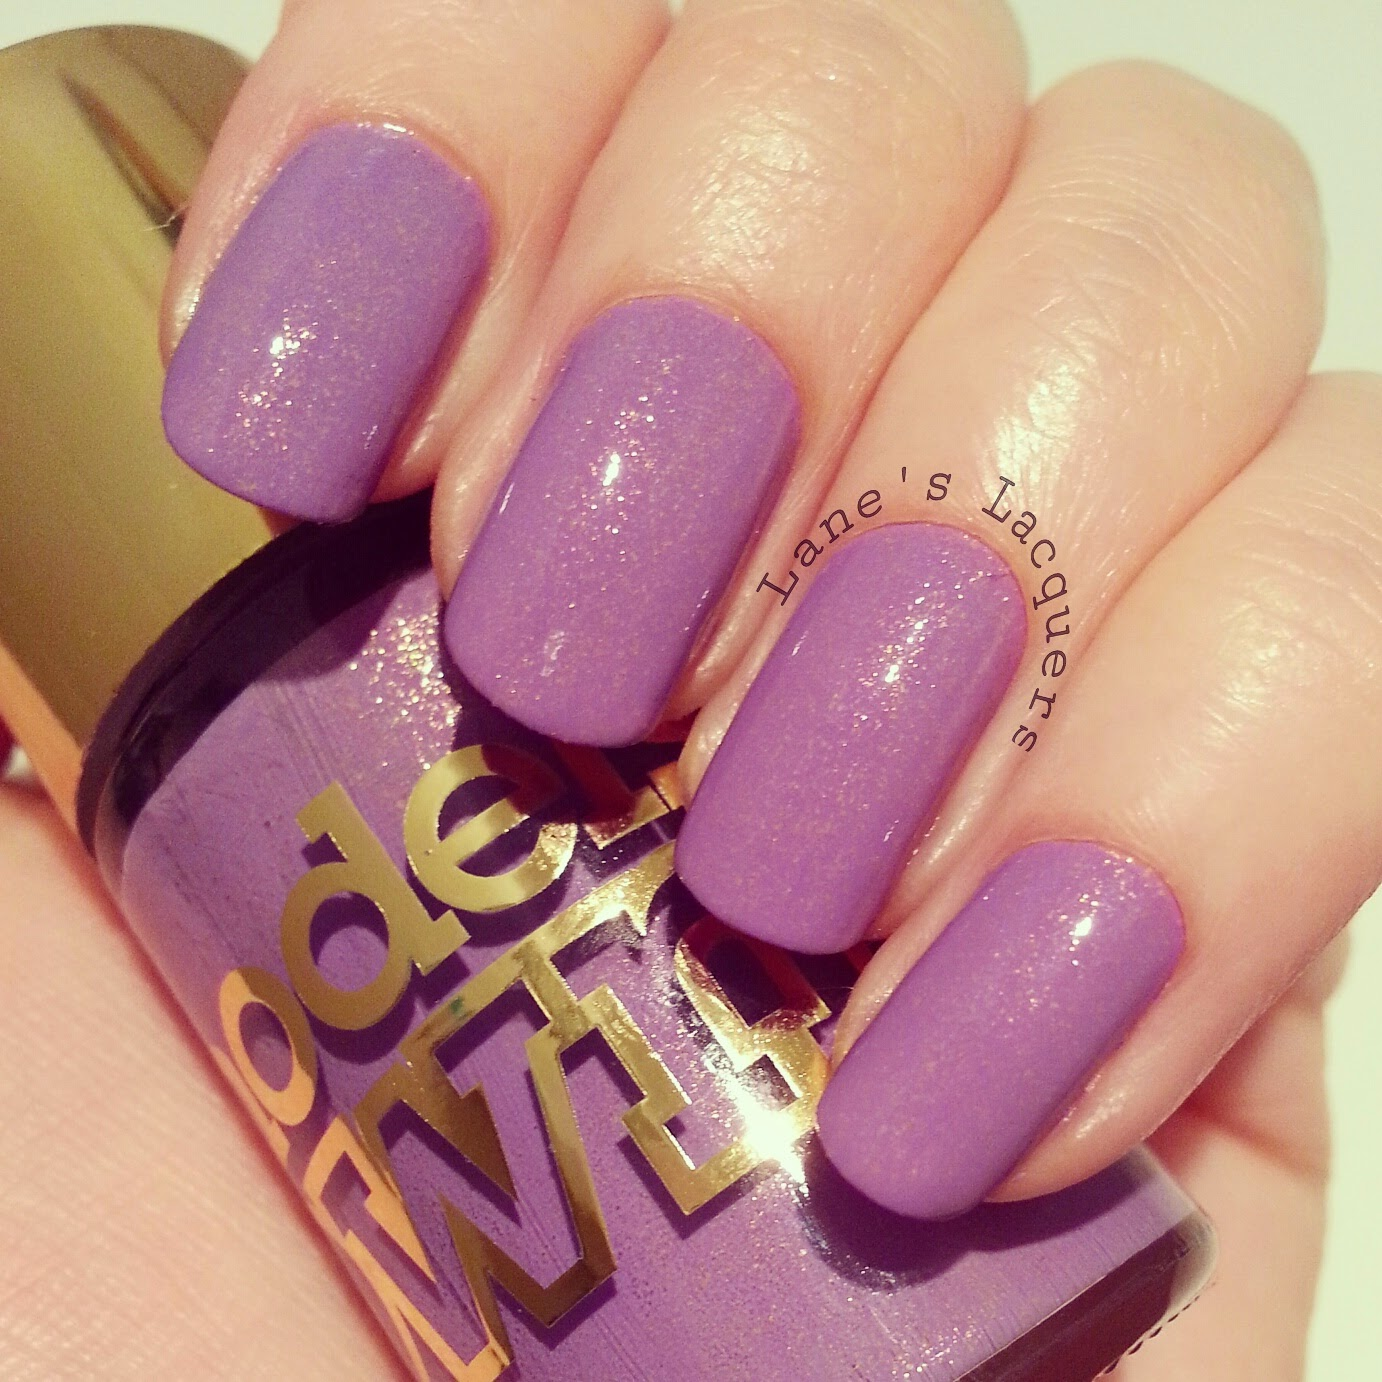 new-models-own-luxe-collection-pear-purple-swatch-nails